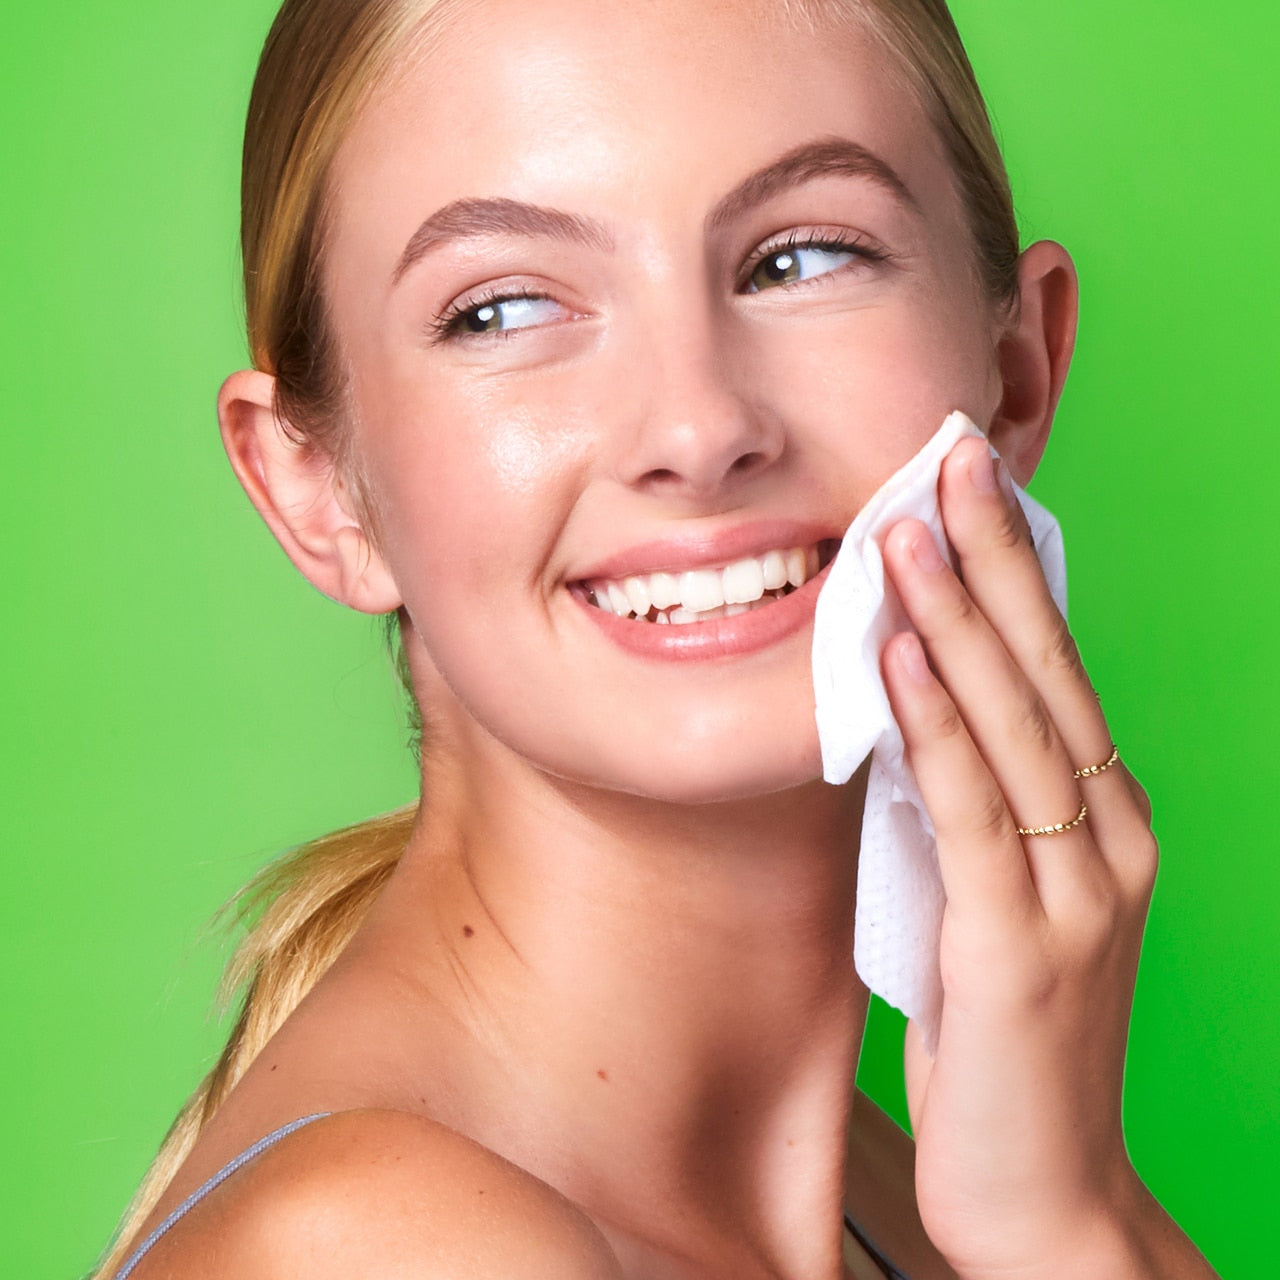 Girl using a Clarify Blemish Cleansing Wipes for Acne, 1% Salicylic Acid